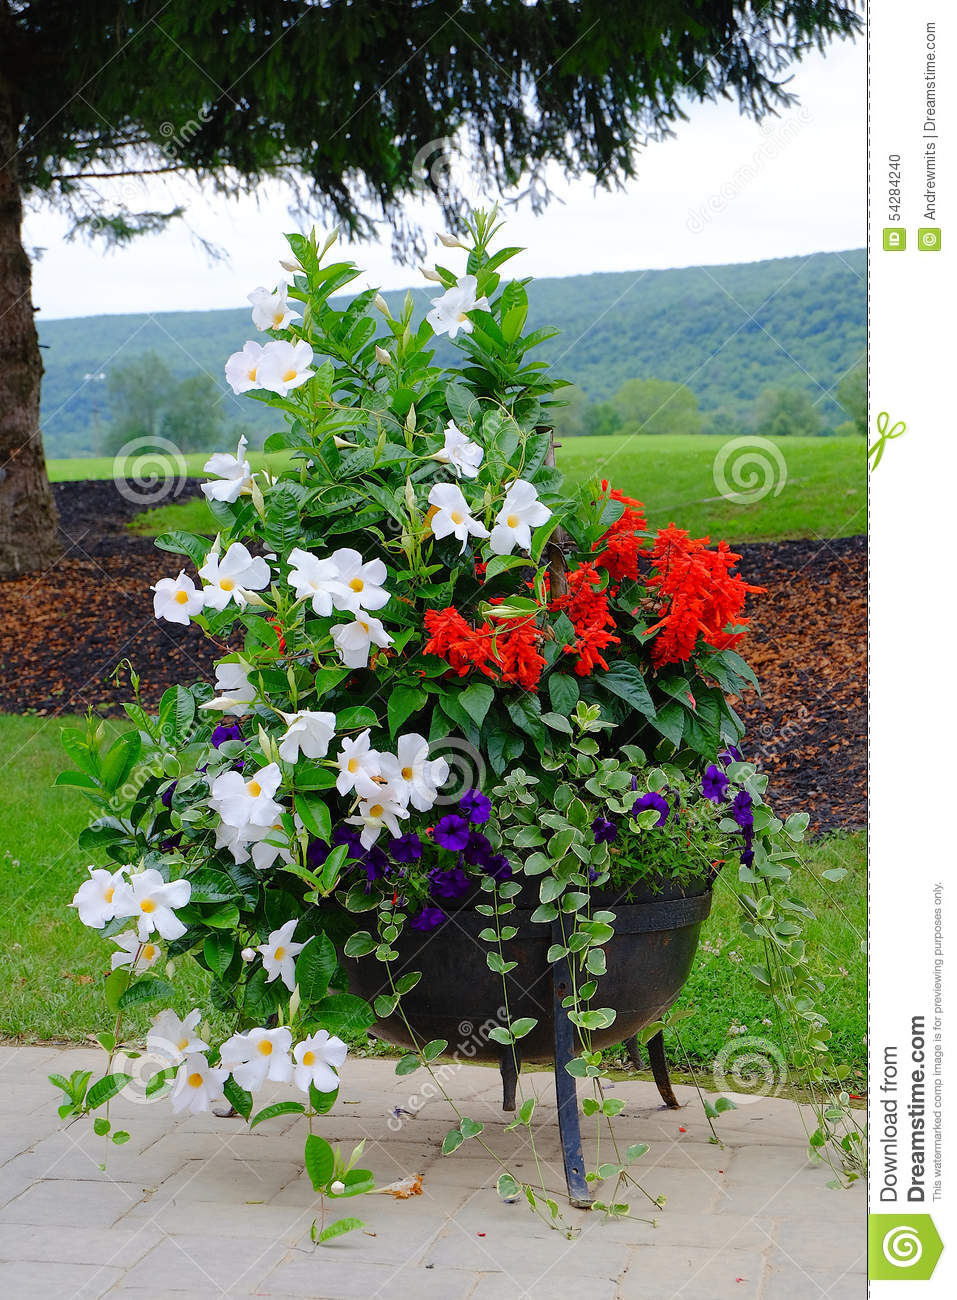 Flower pot on patio stock photo image of patio landscape 54284240 download comp izmirmasajfo